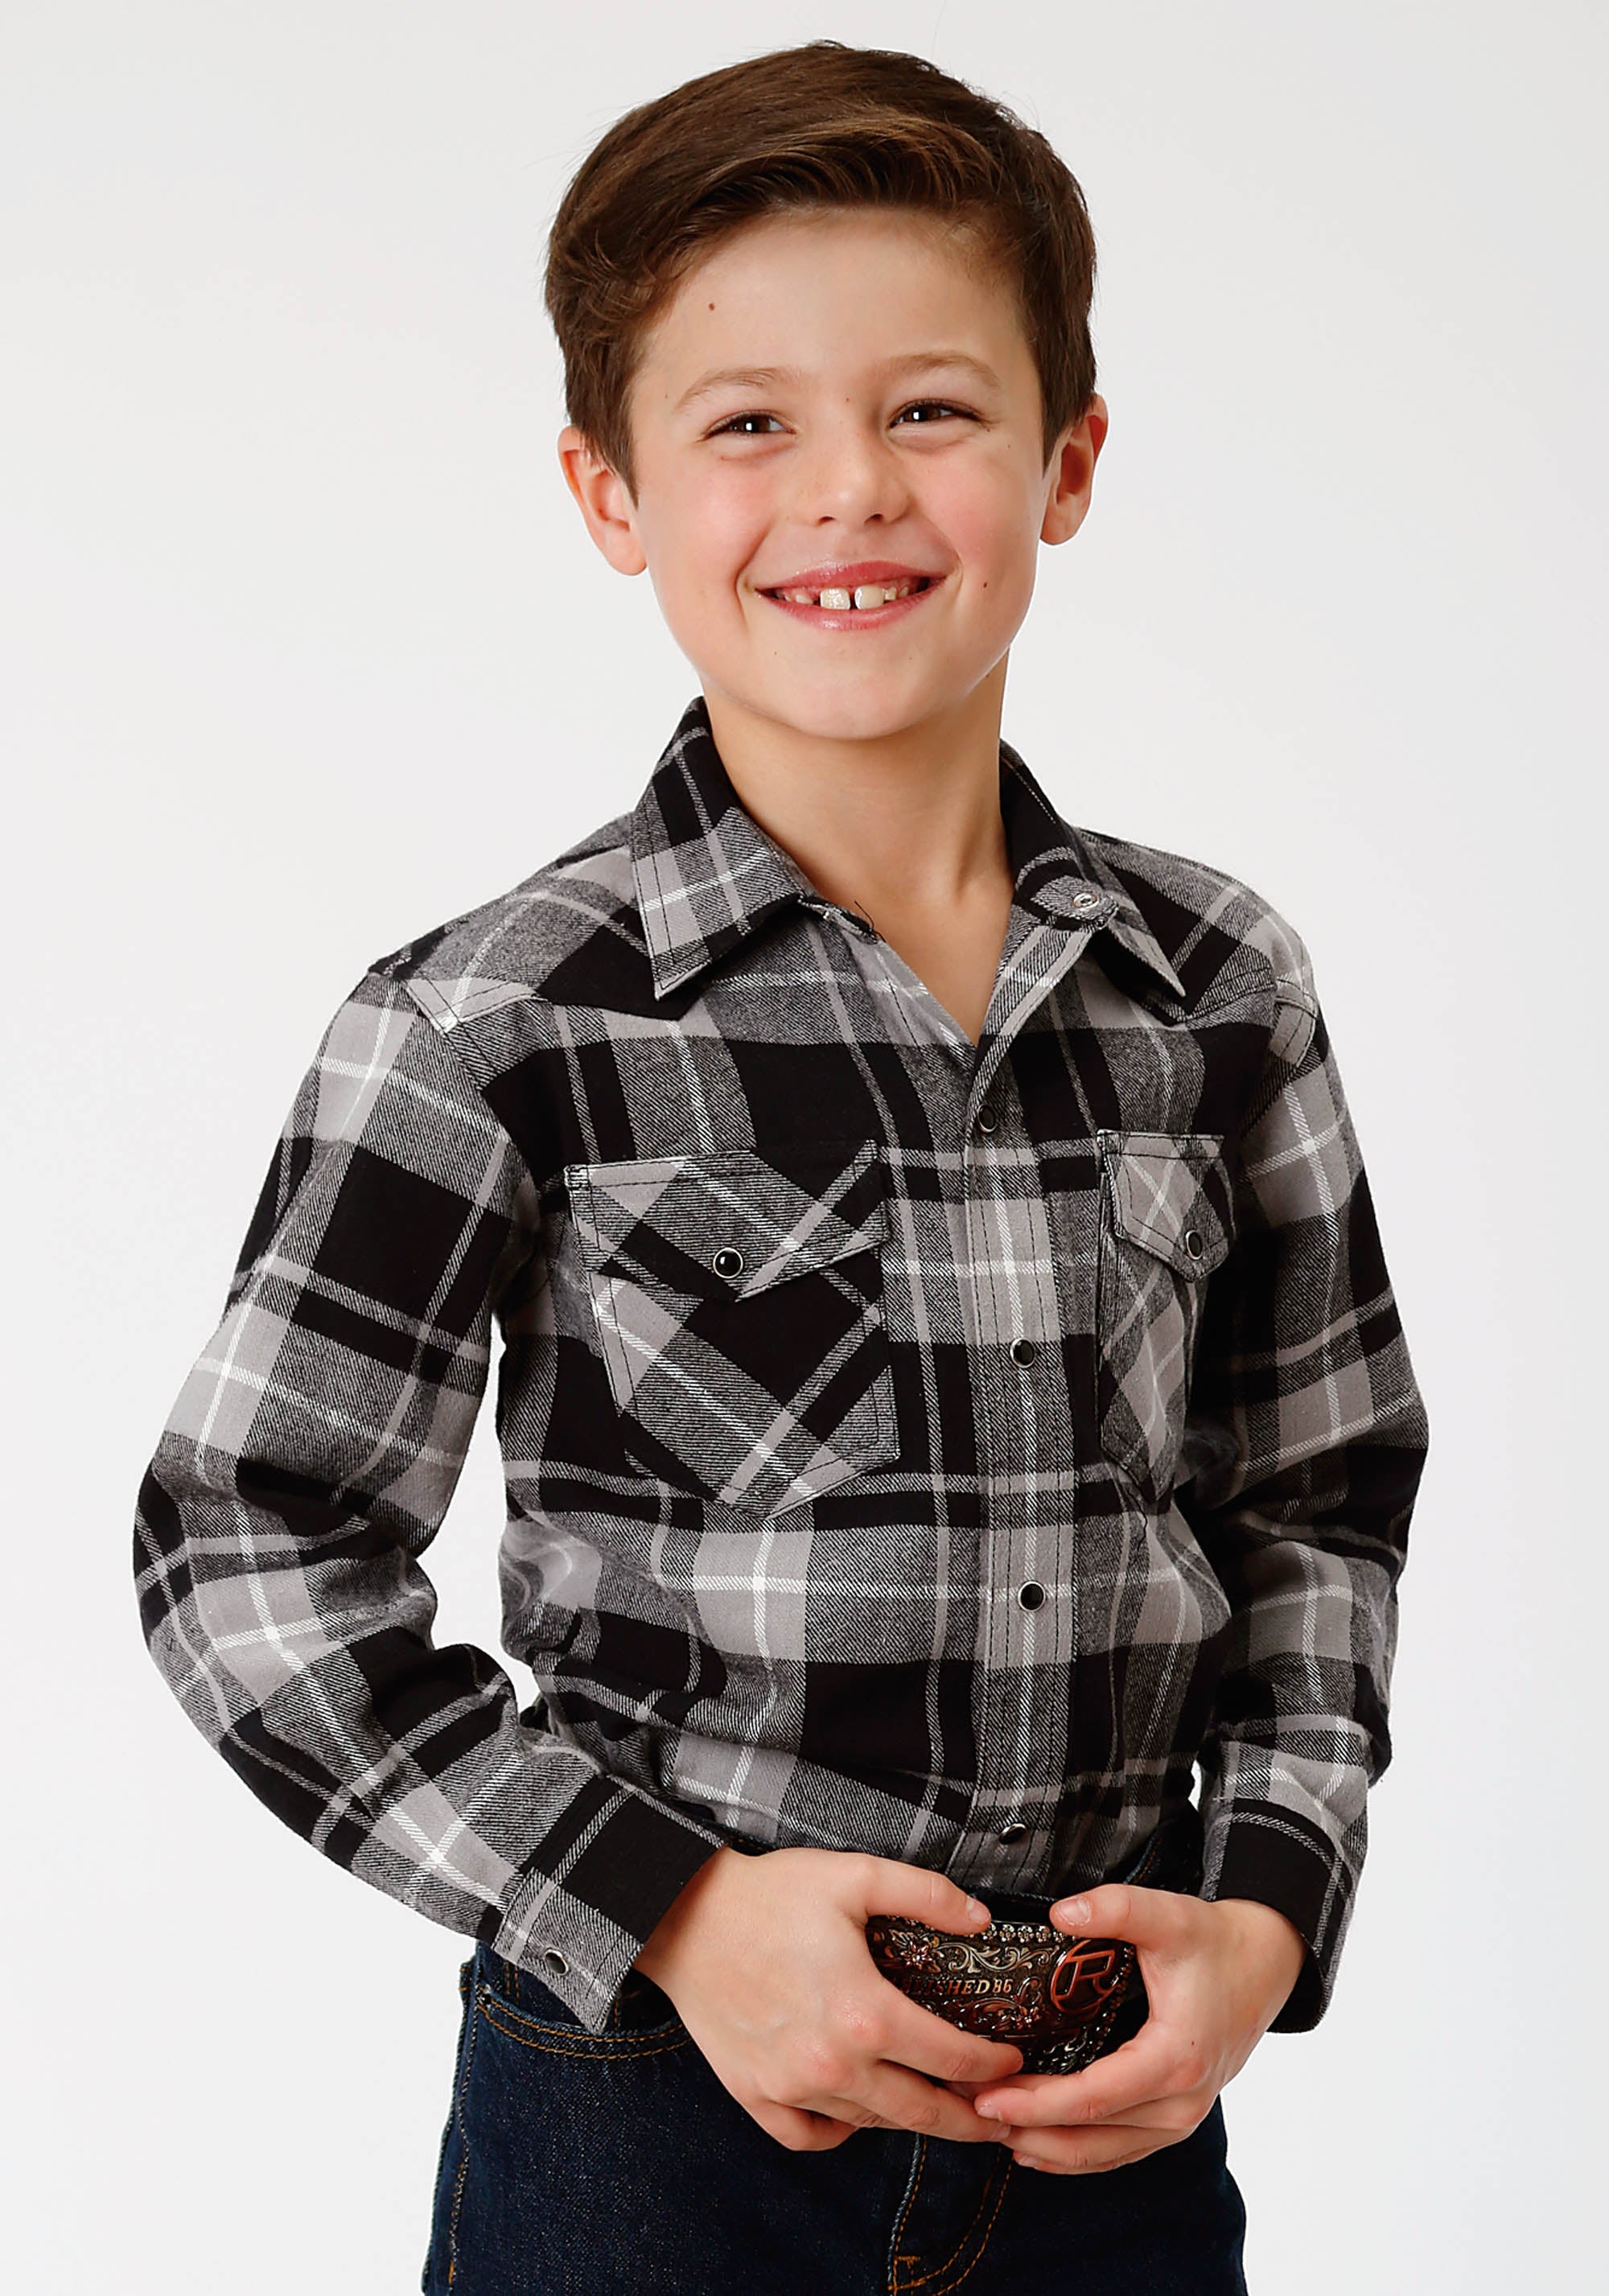 ROPER BOYS BLACK 9372 BL/GY PLAID FLANNEL SHIRT  LONG SLEEVE